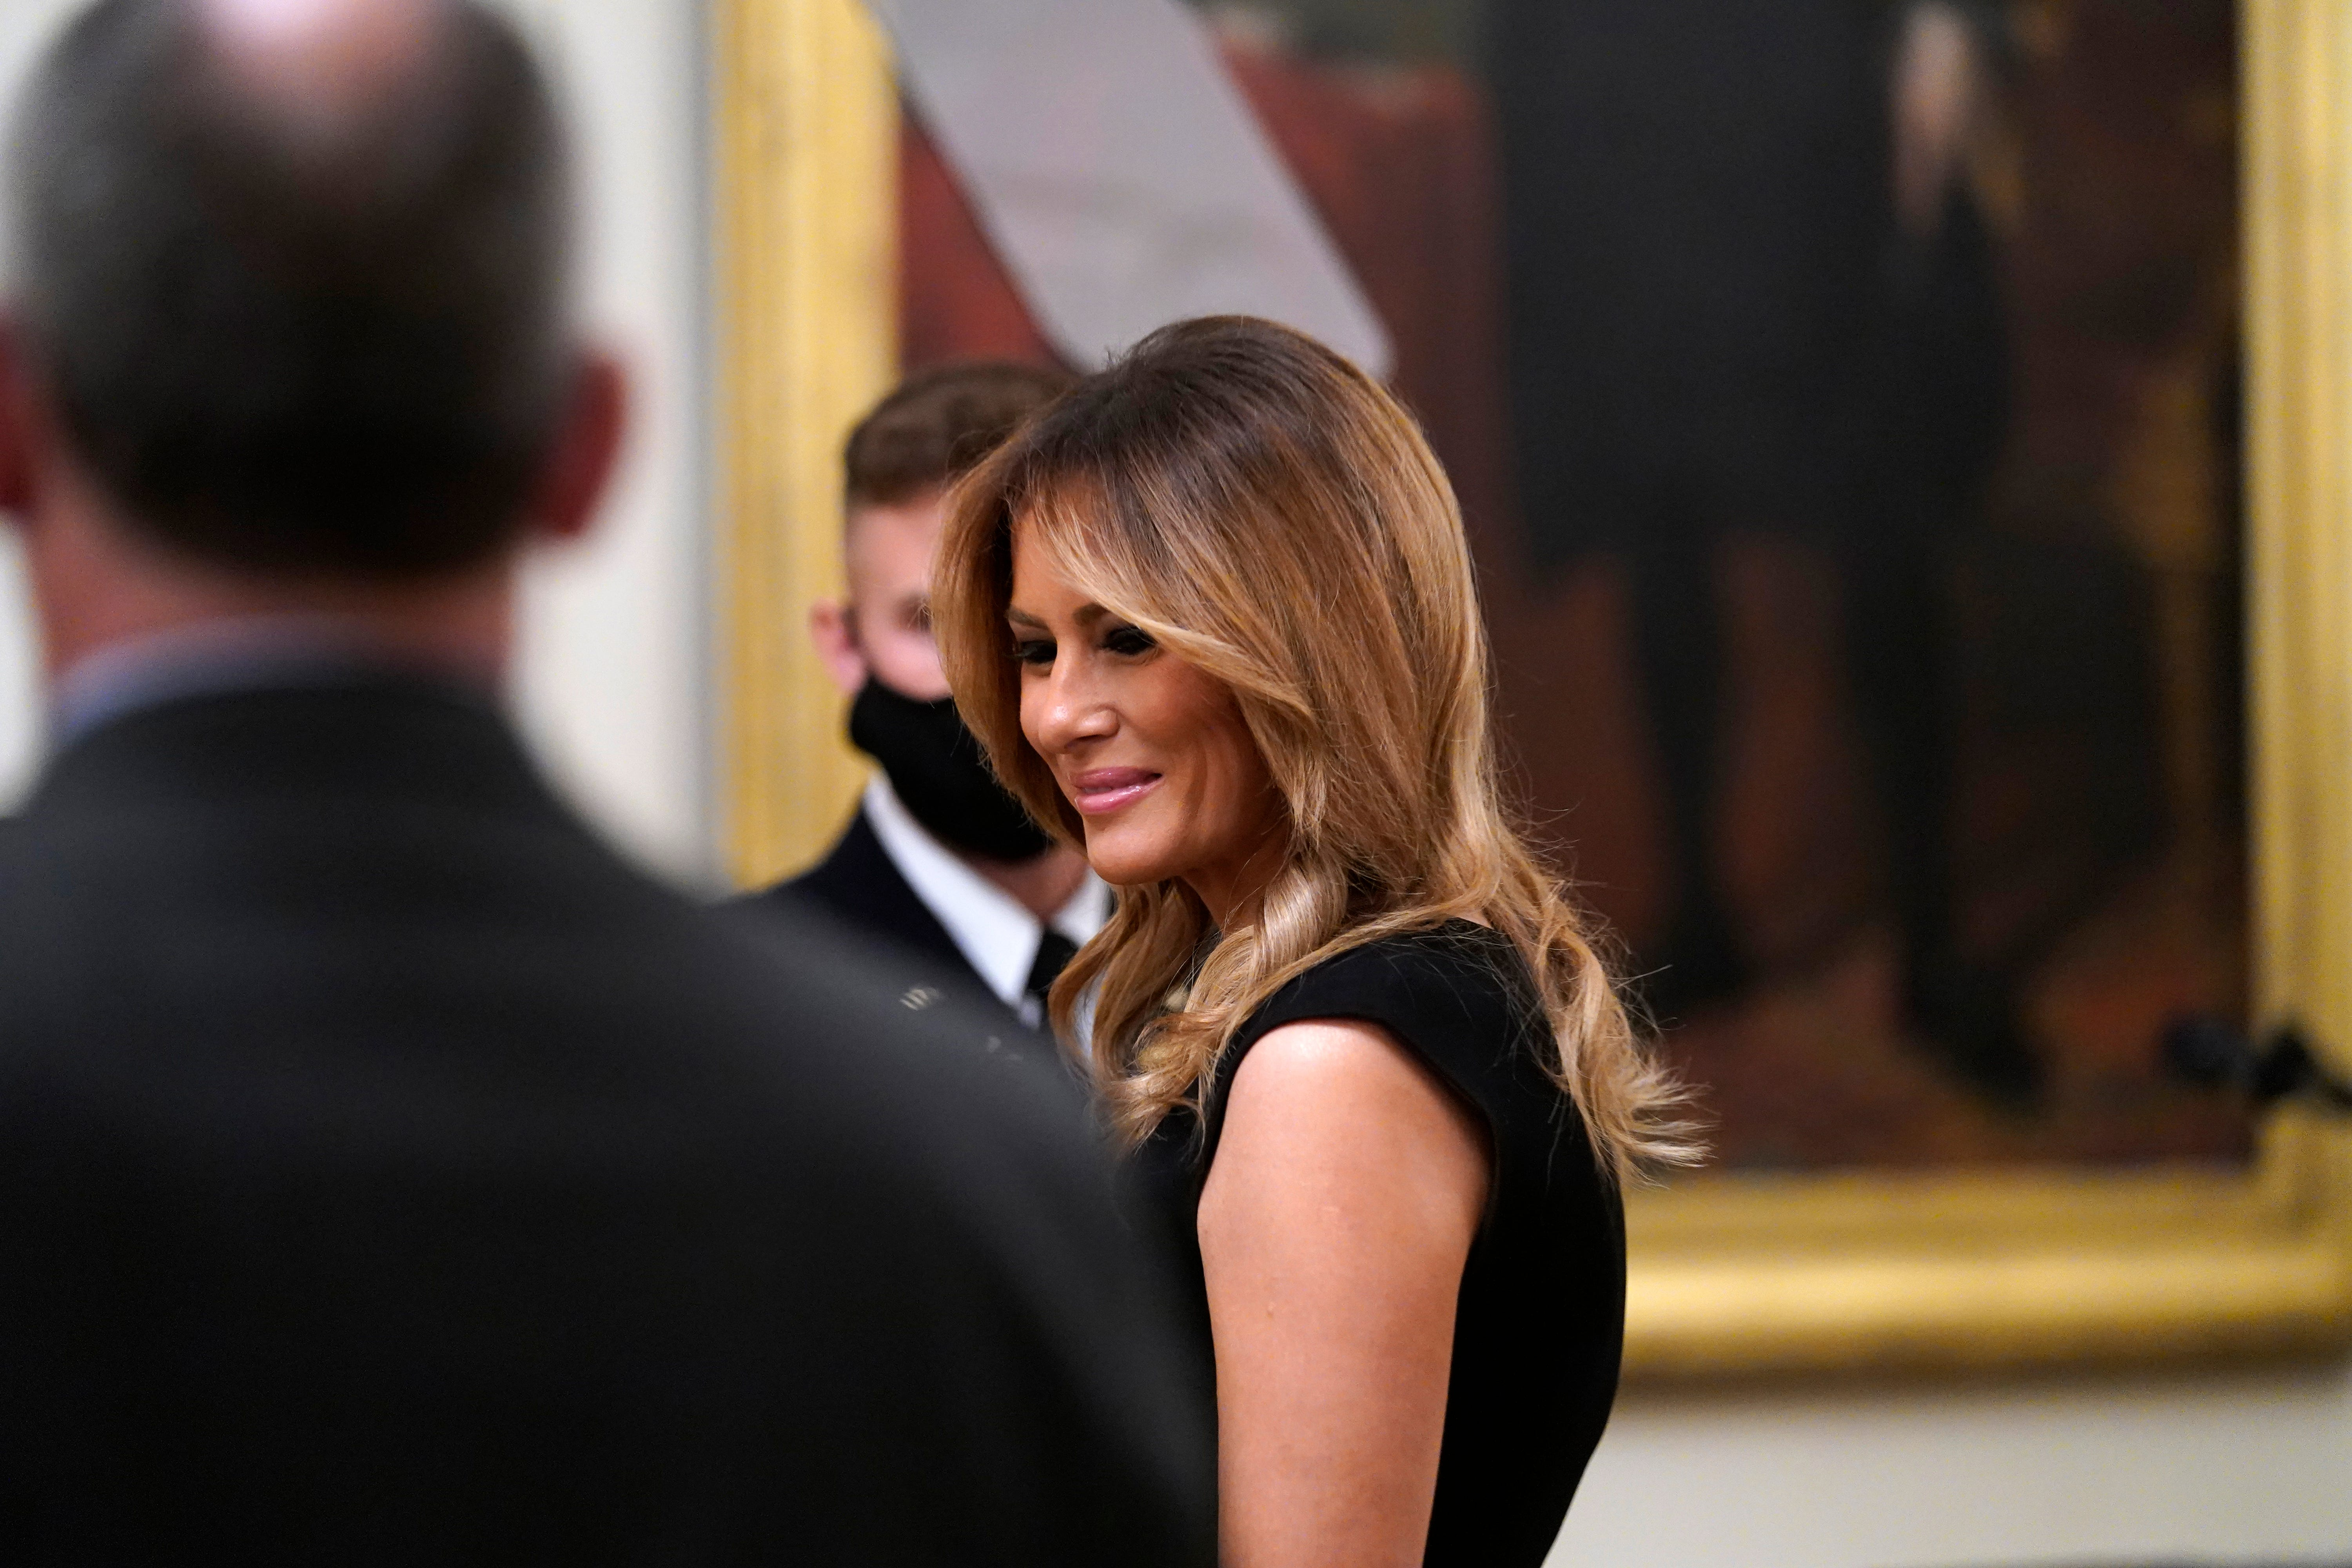 They say I m complicit : Former friend of Melania Trump releases profanity-laced audio of discussions about her legacy